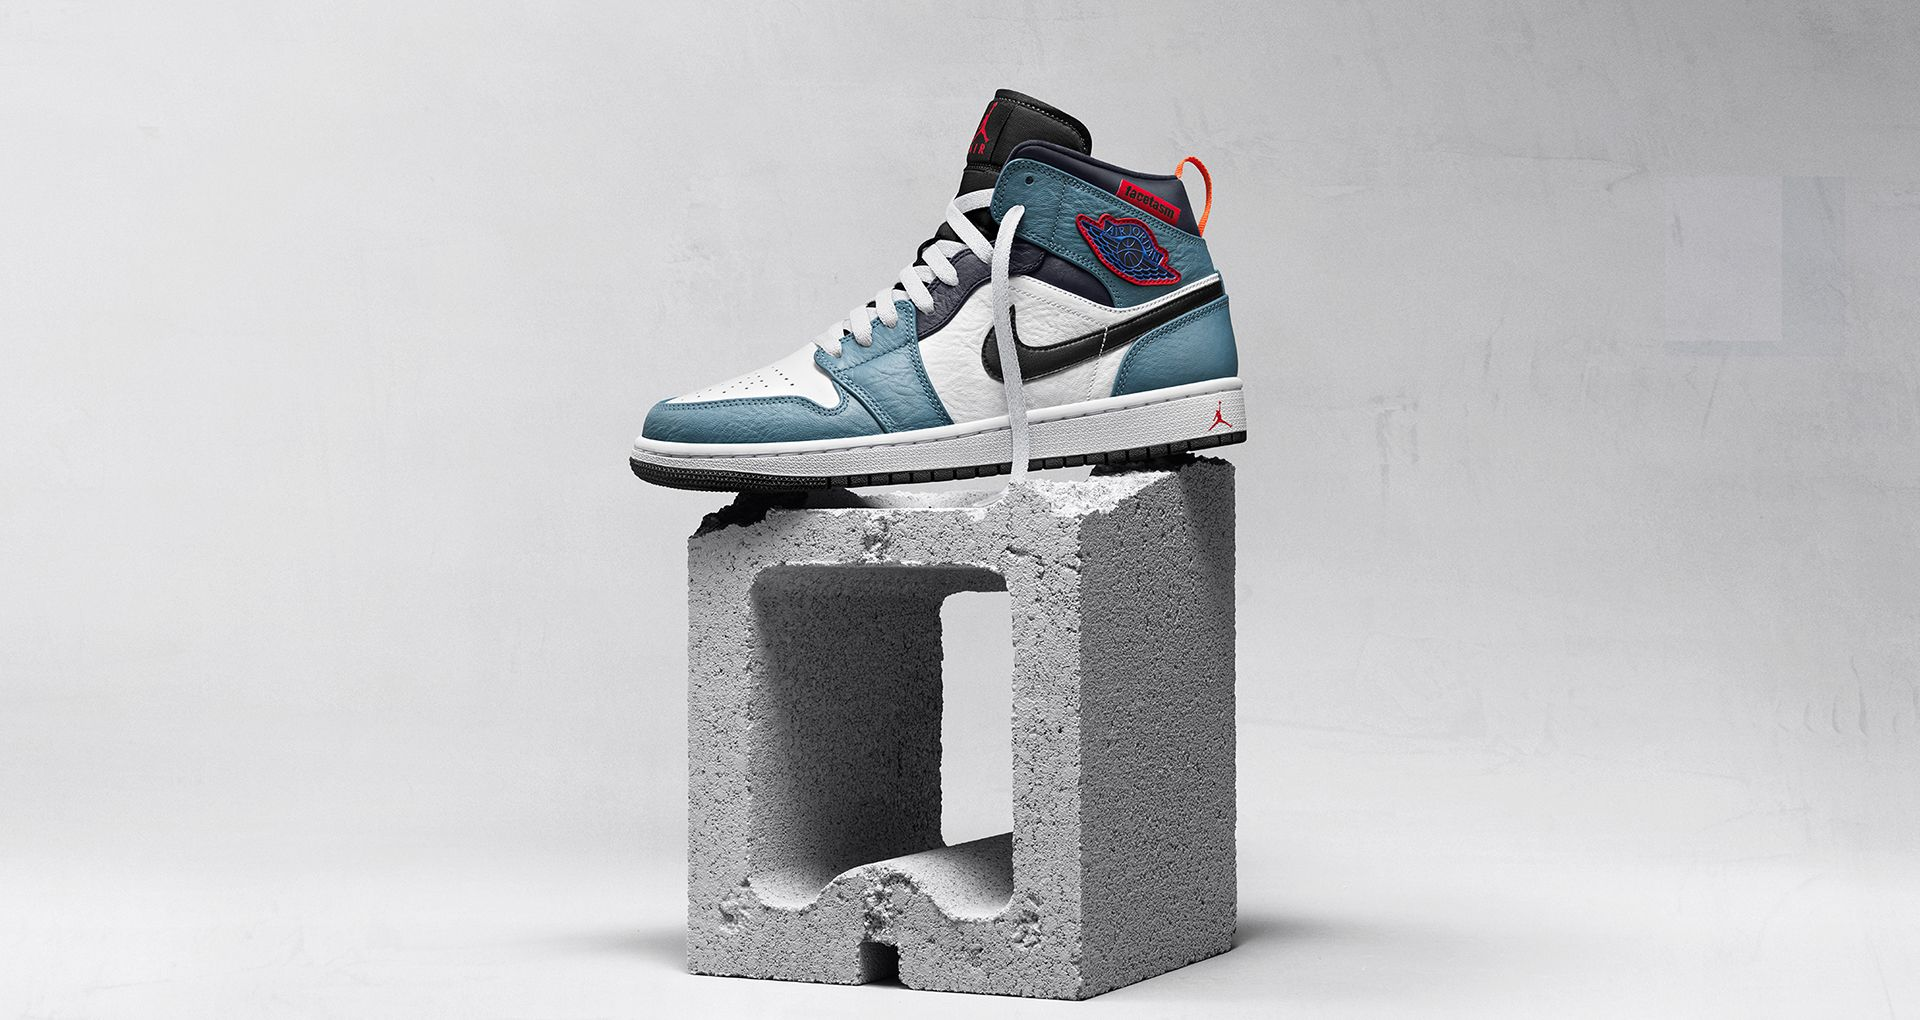 x Facetasm Tokyo Air Jordan 1 Sneakers by Nike, available on nike.com for $130 Rihanna Shoes Exact Product